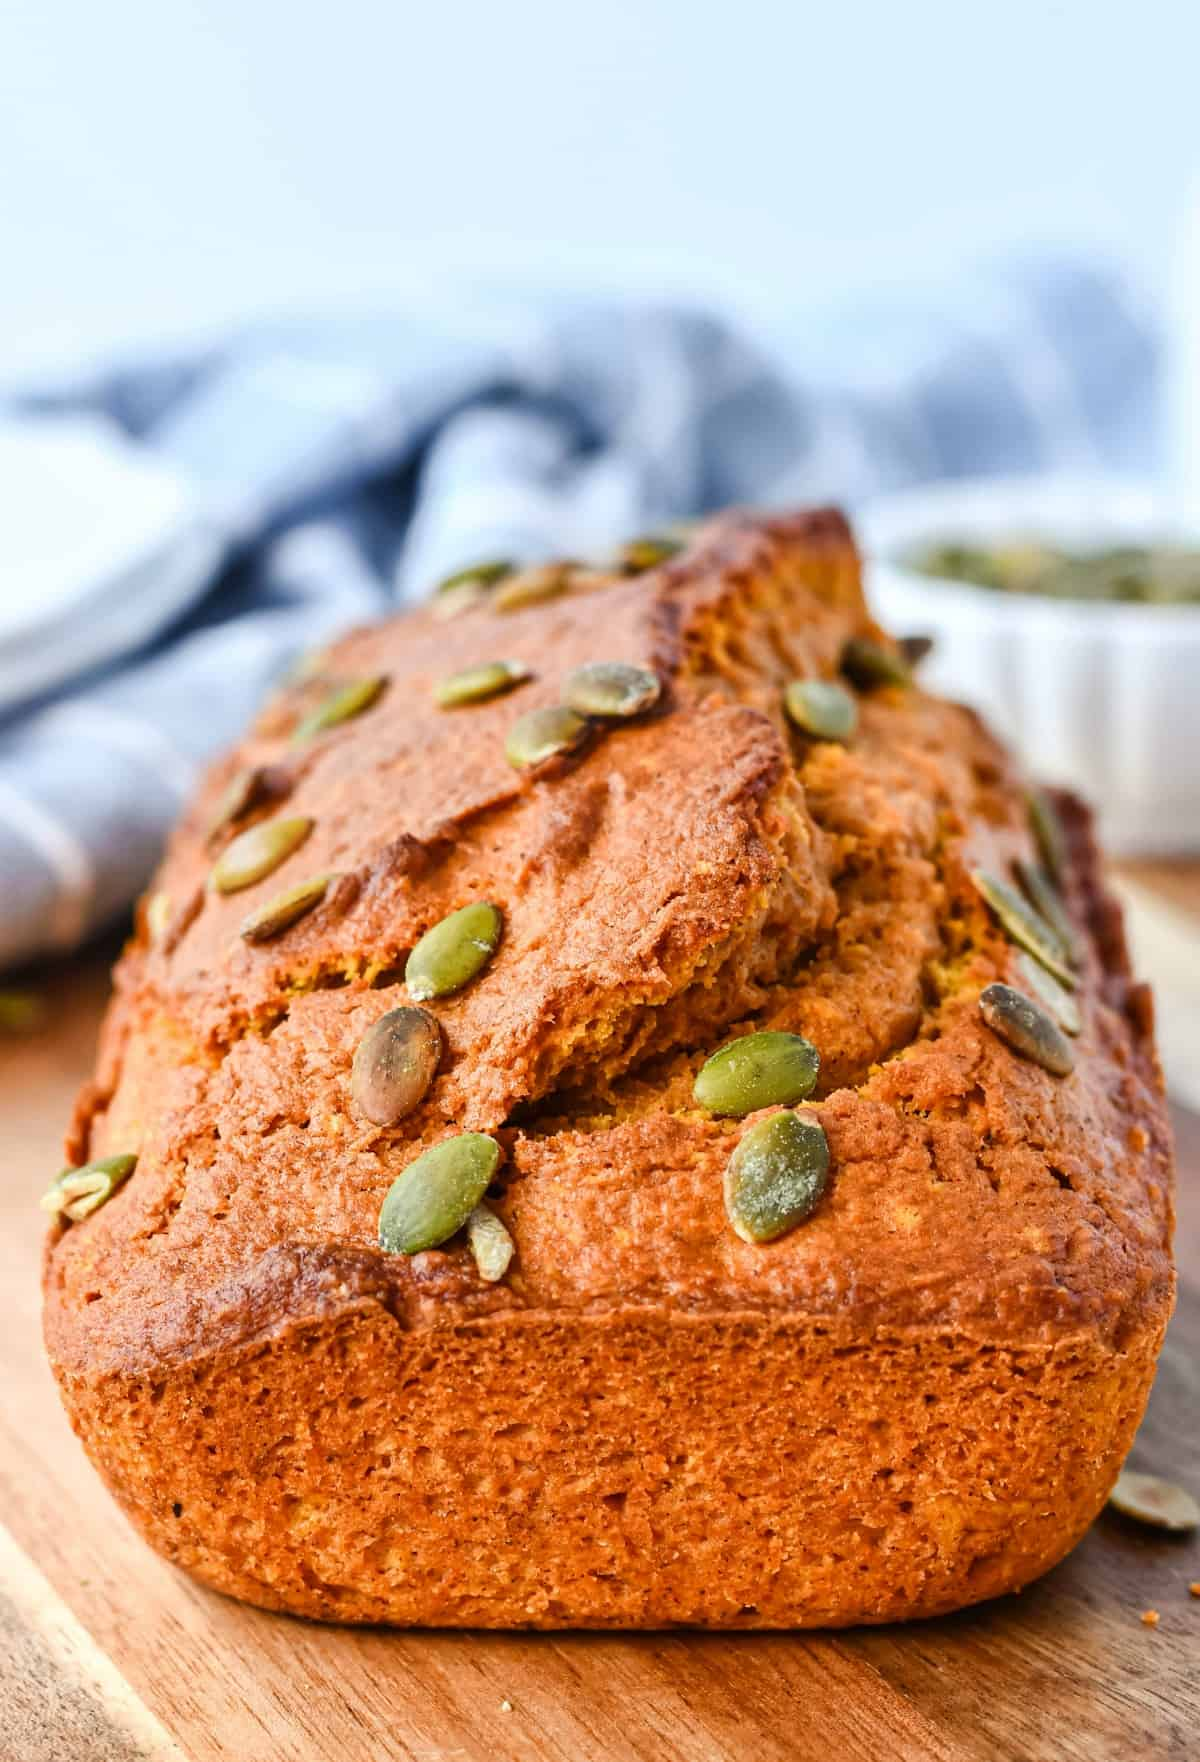 Loaf of pumpkin bread with pumpkin seeds on wooden cutting board.